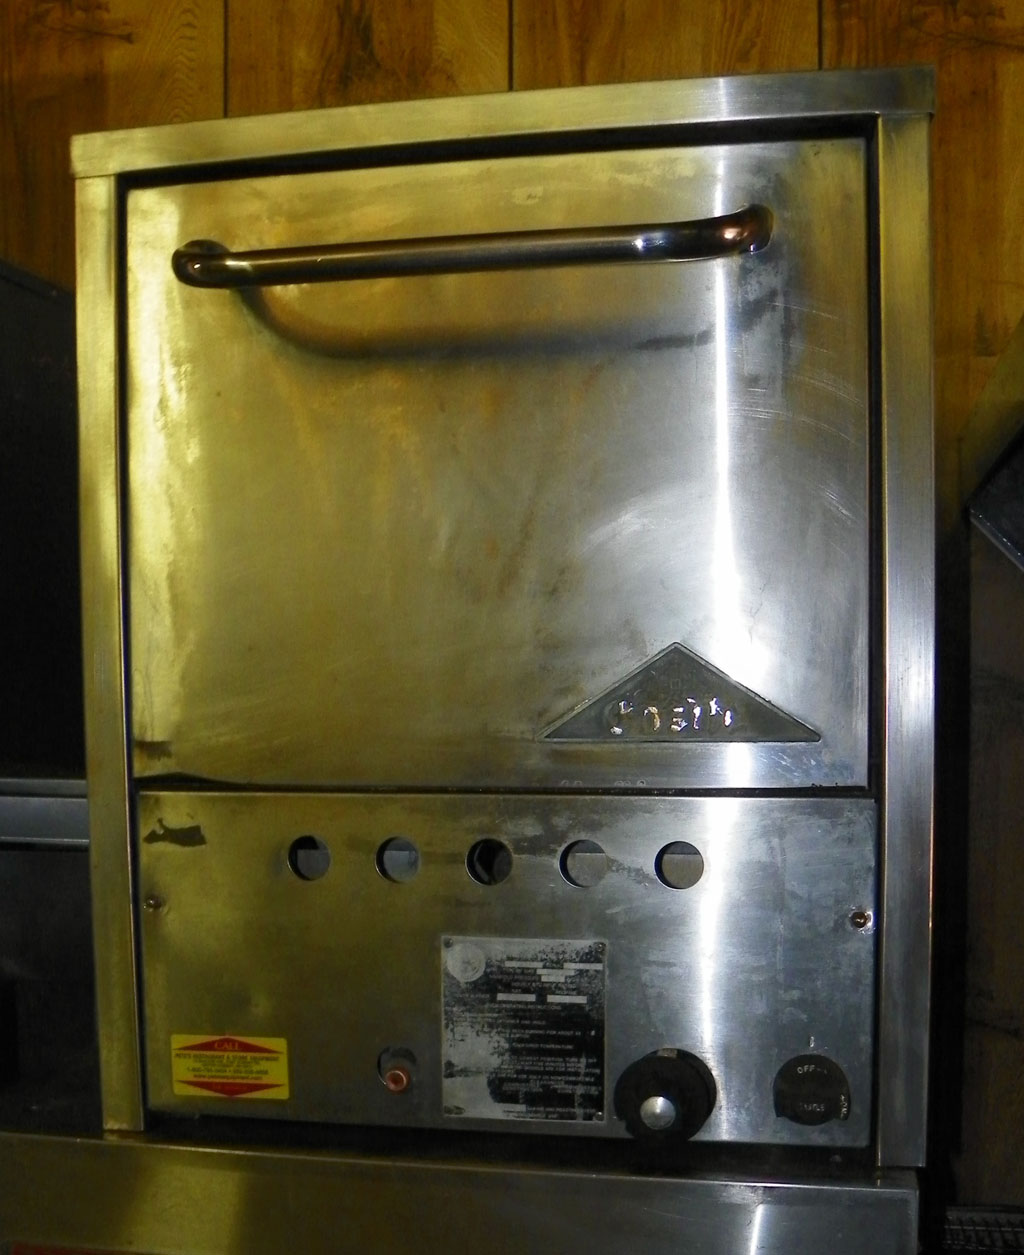 used comstock castle used countertop gas pizza oven p018 - Countertop Pizza Oven